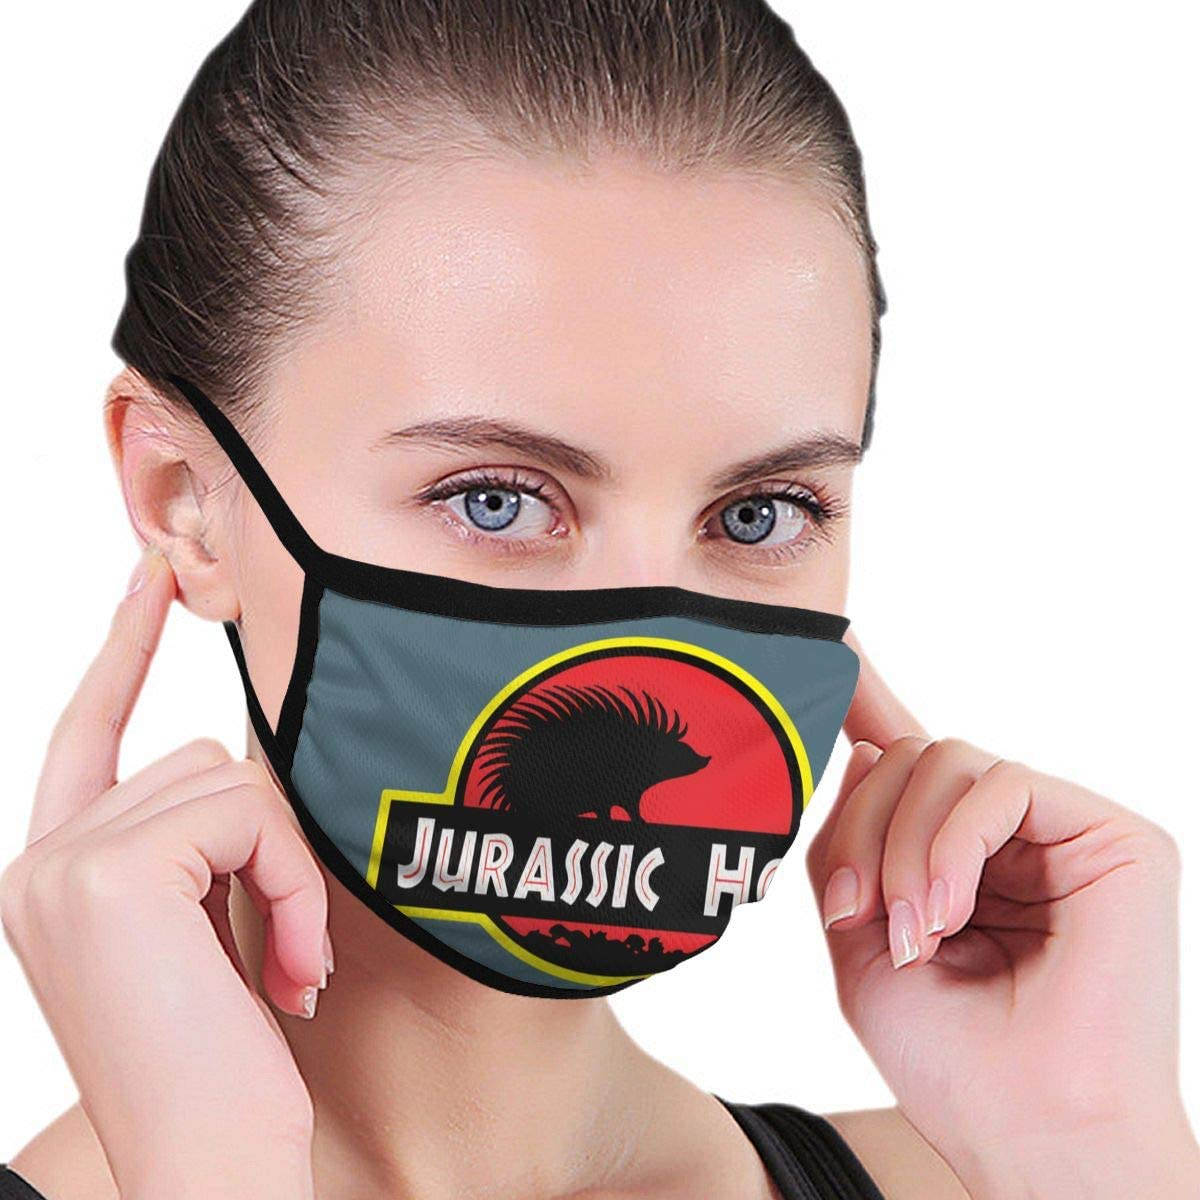 Zhengyu Jupassk Park Face Mouth Protect Comfy Breathable Safety Air Fog Outdoor Fashion Half Face Face Protections - for Man and Woman